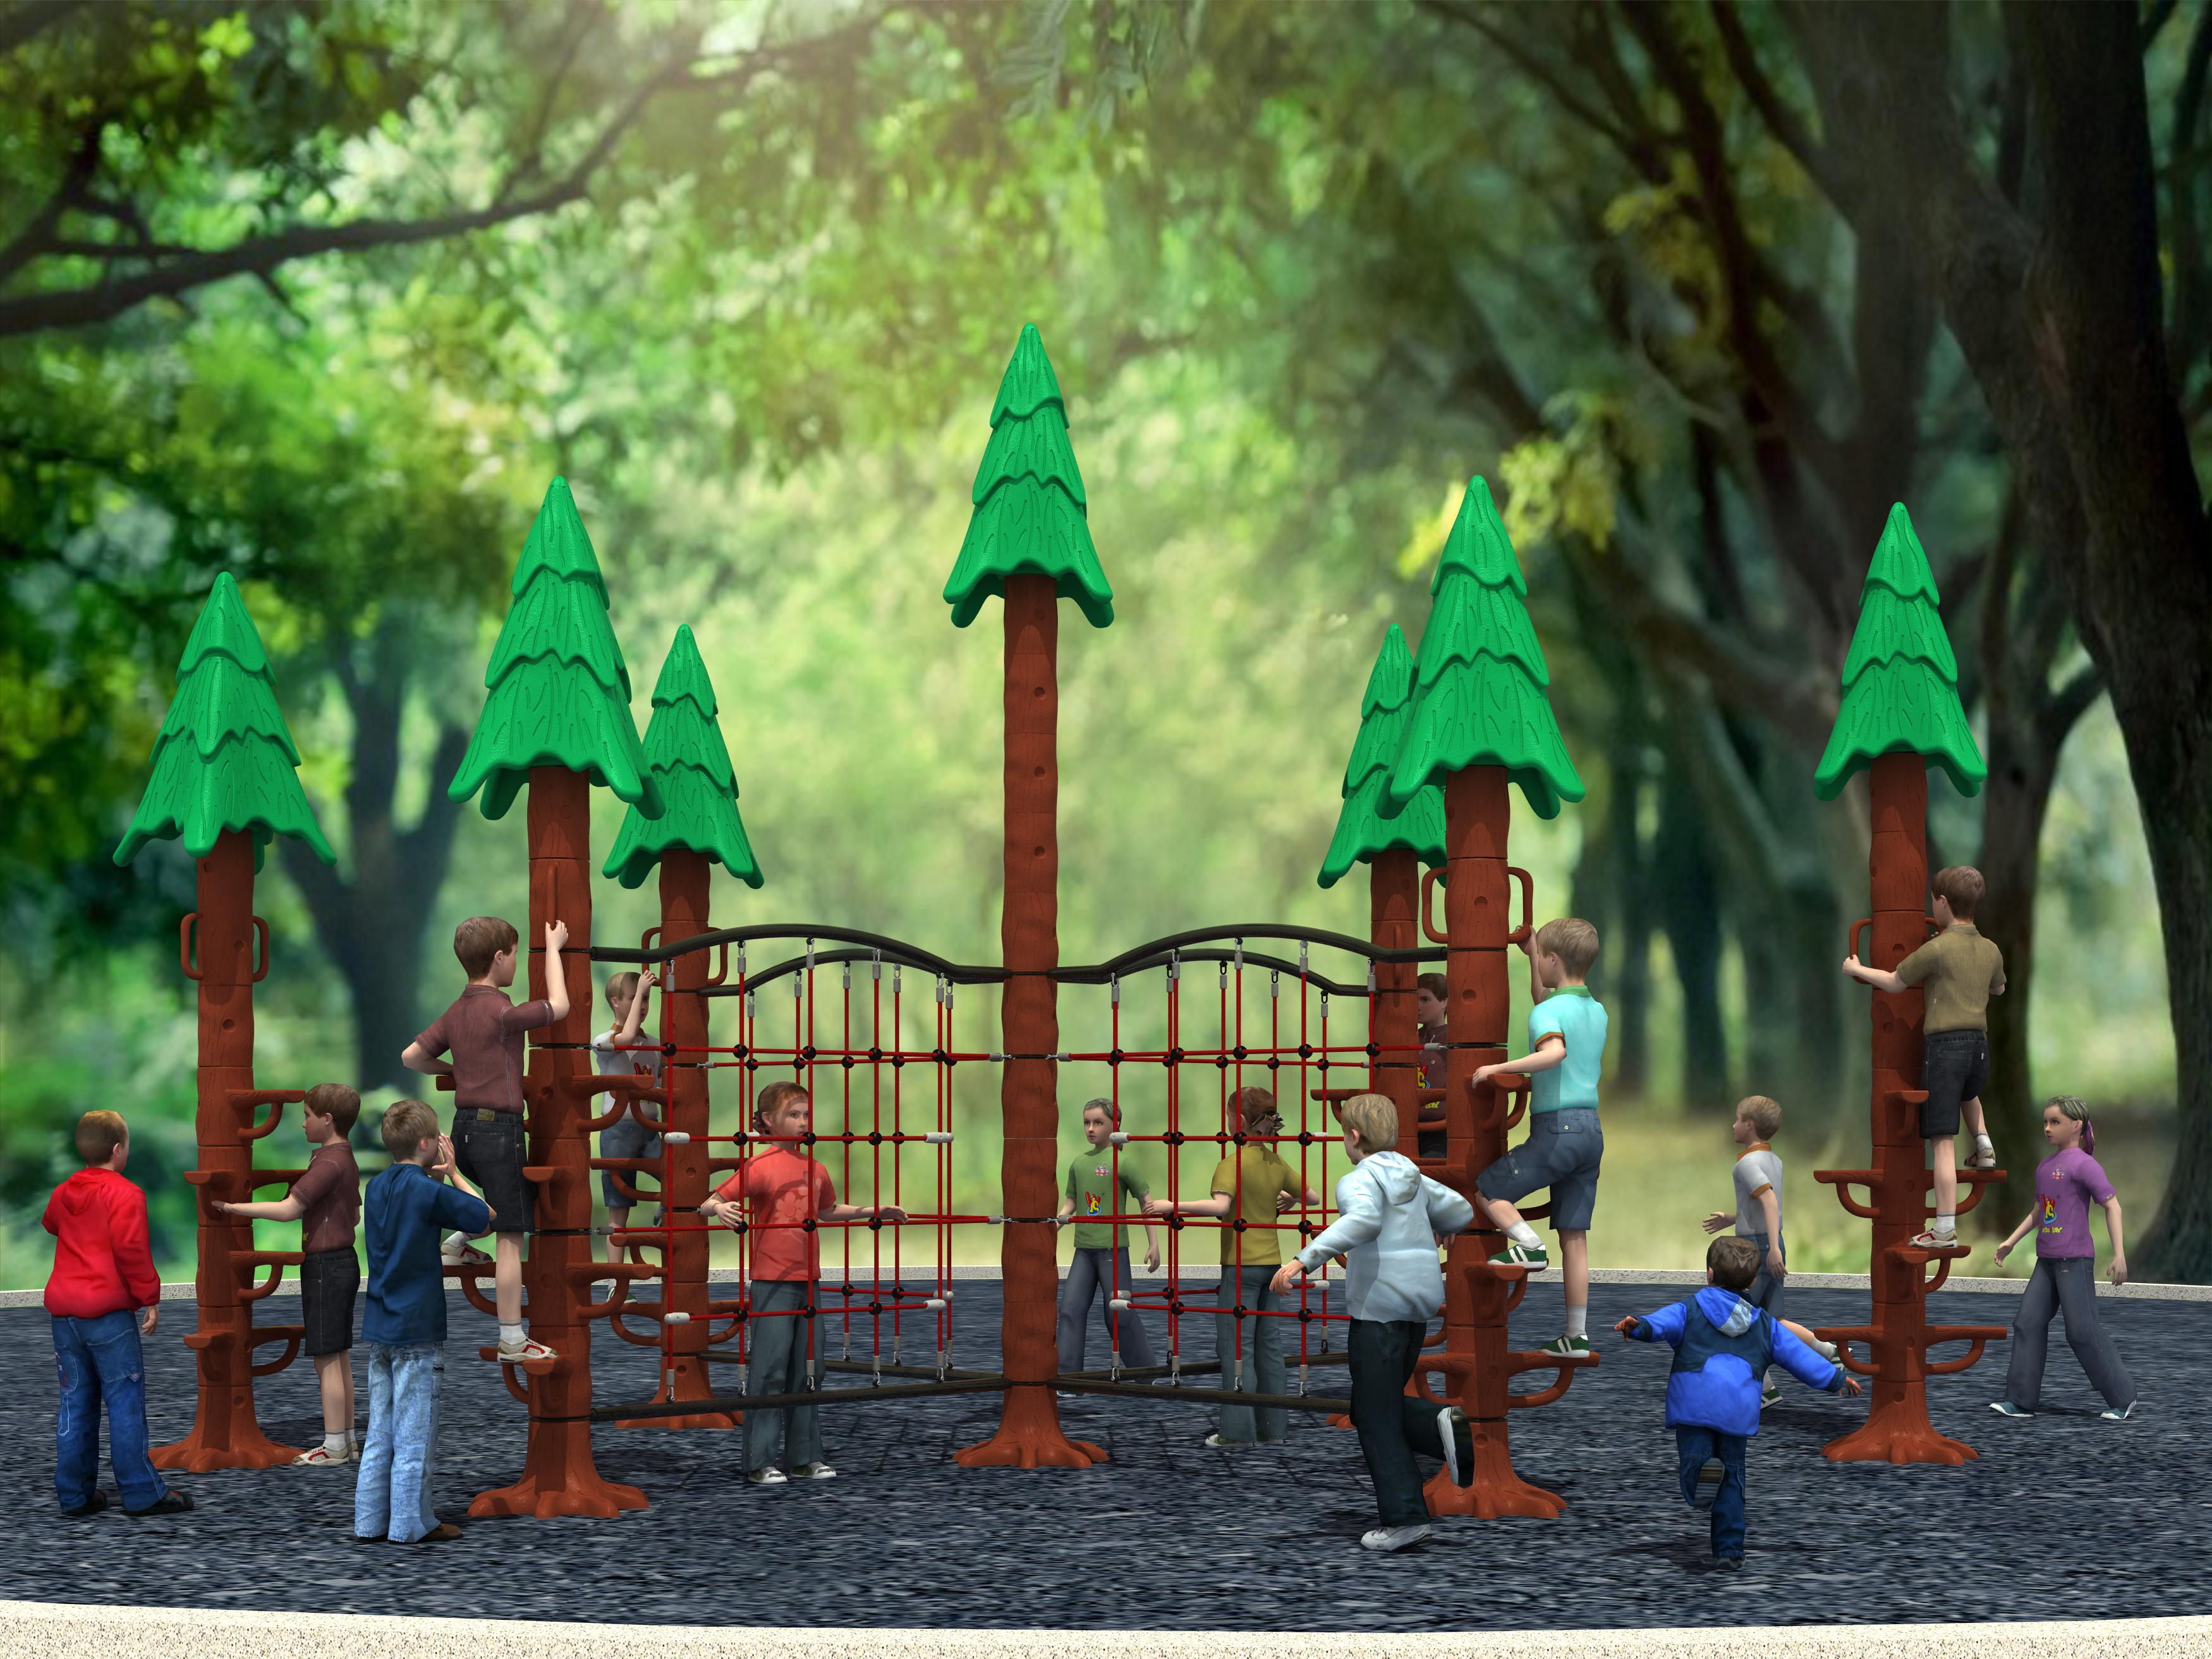 WD-HP102 Sequoia Climber Trees in Outdoor Playground, GS certificated